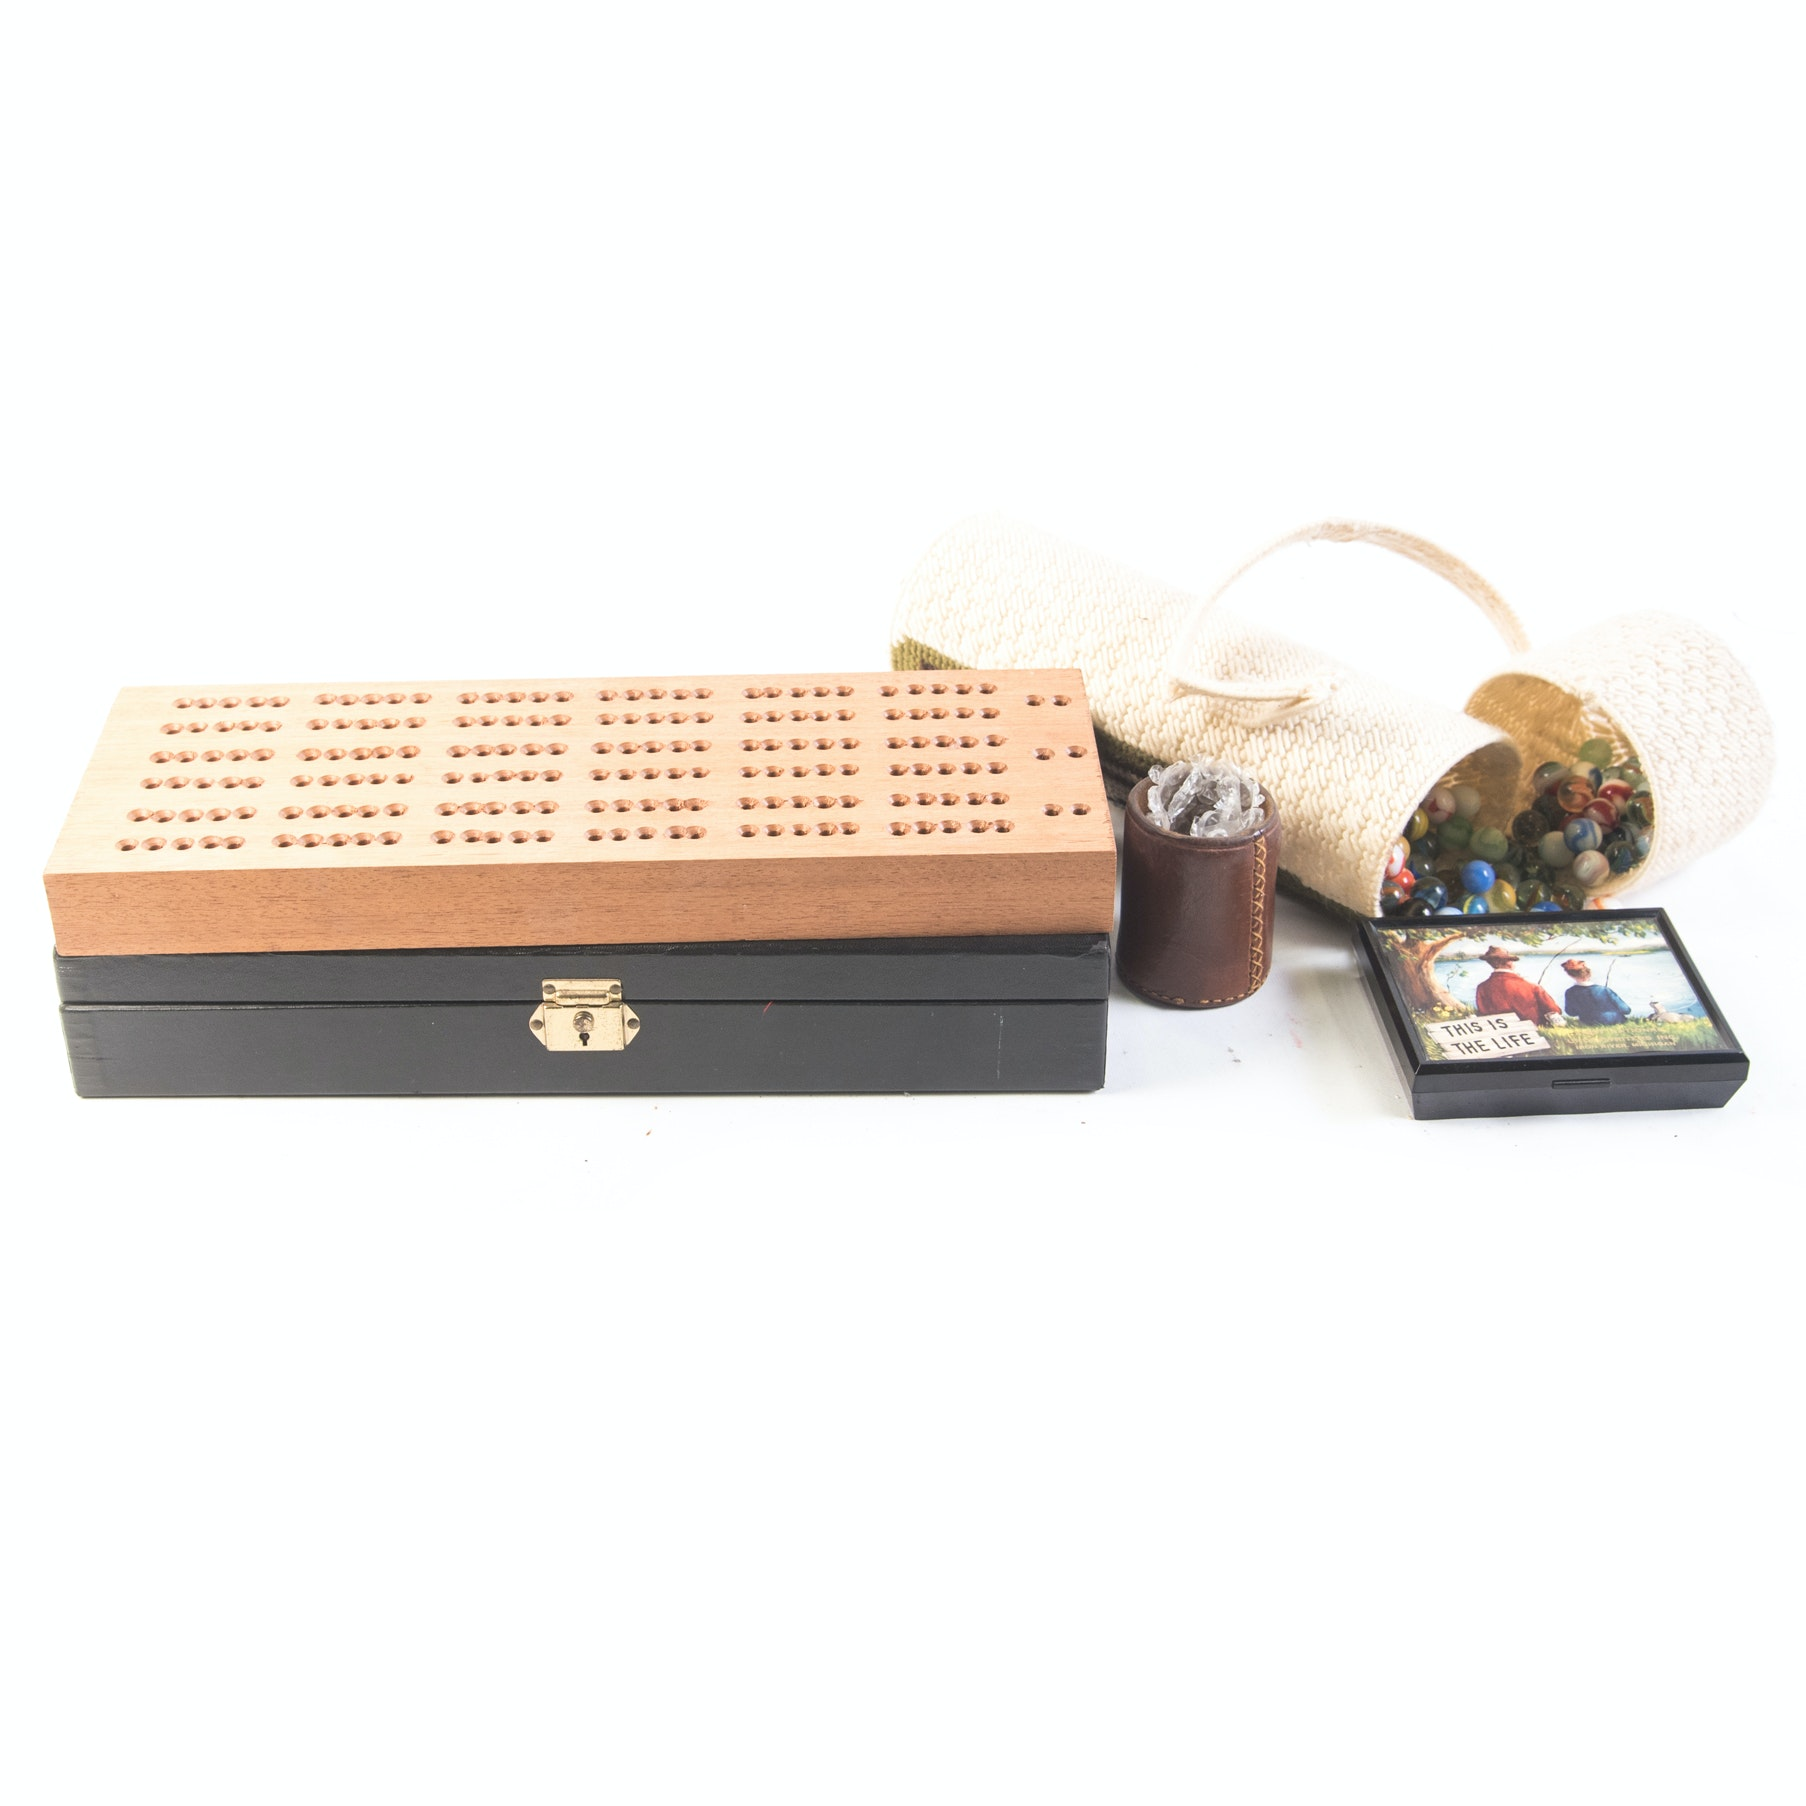 Poker, Cribbage, Dice, and Marbles Assortment